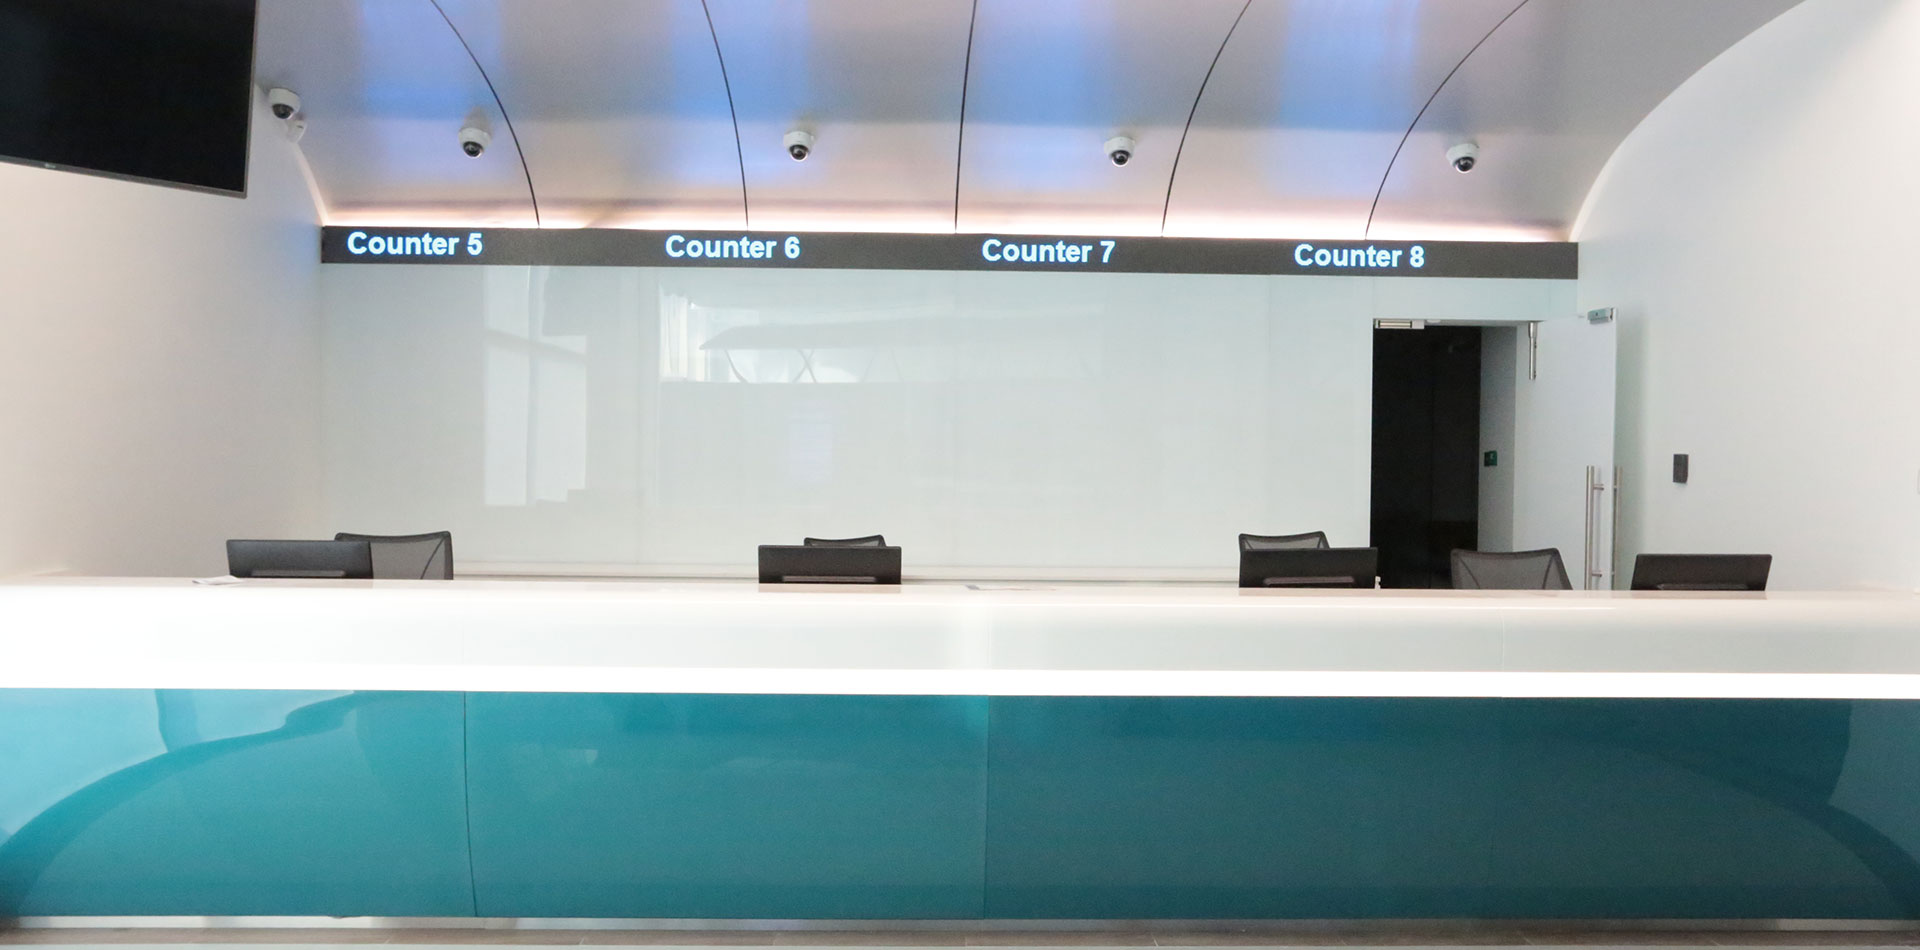 LED tickers for four separate counters